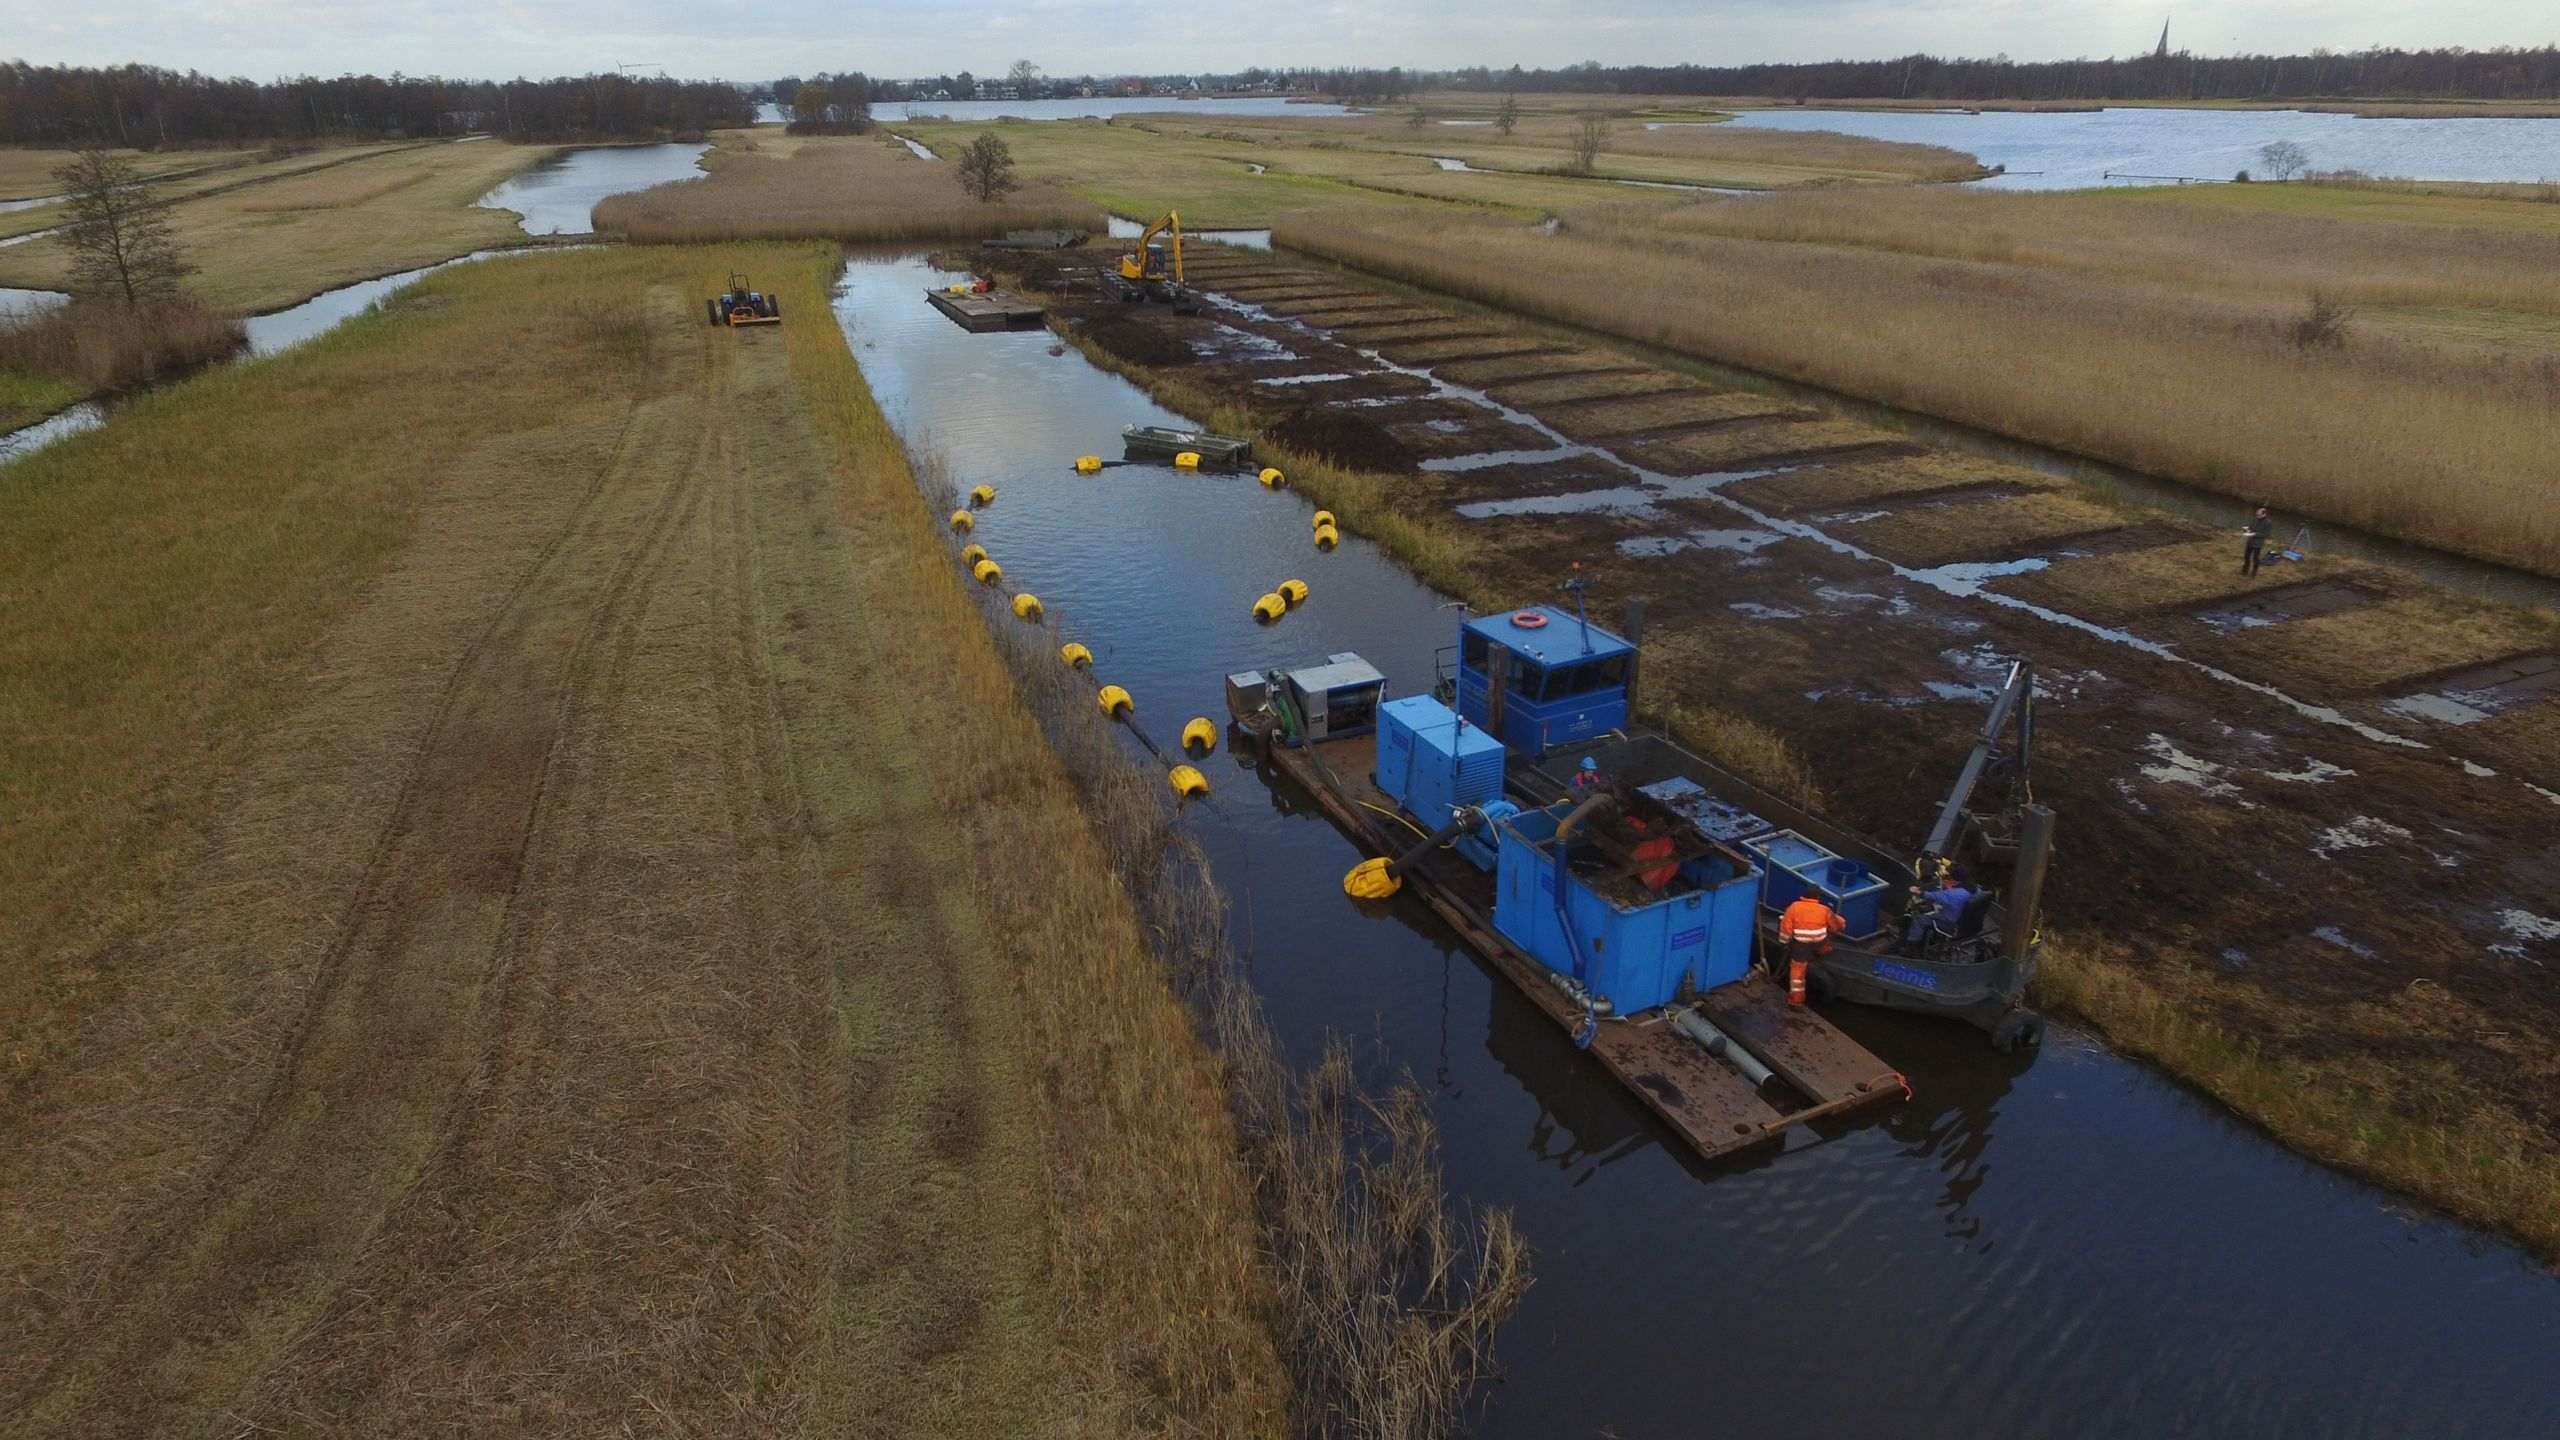 Nieuwkoopse plassen - We cut more than 1 hectare of vibrating peat!